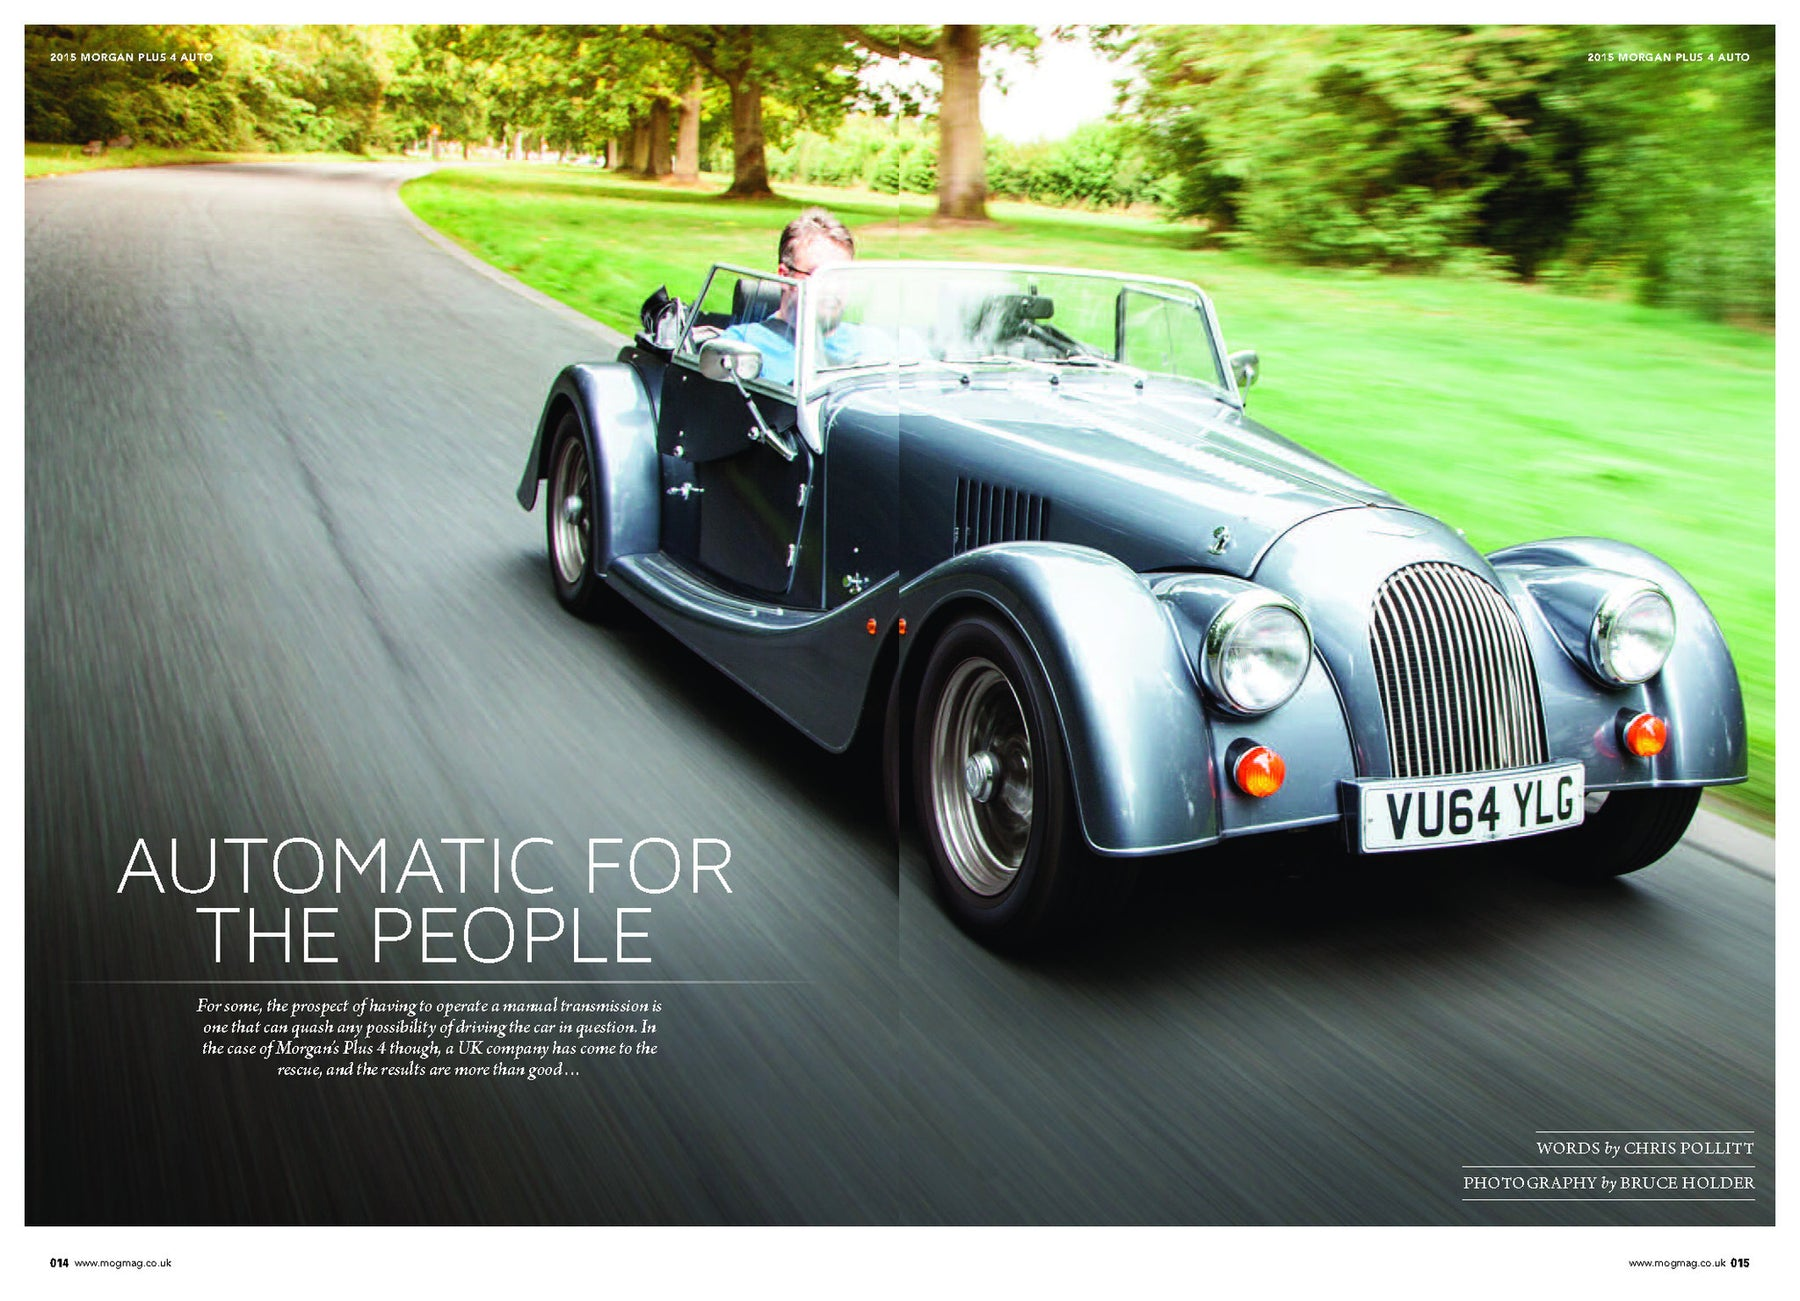 Automatic For The People – Morgan Plus 4 Automatic